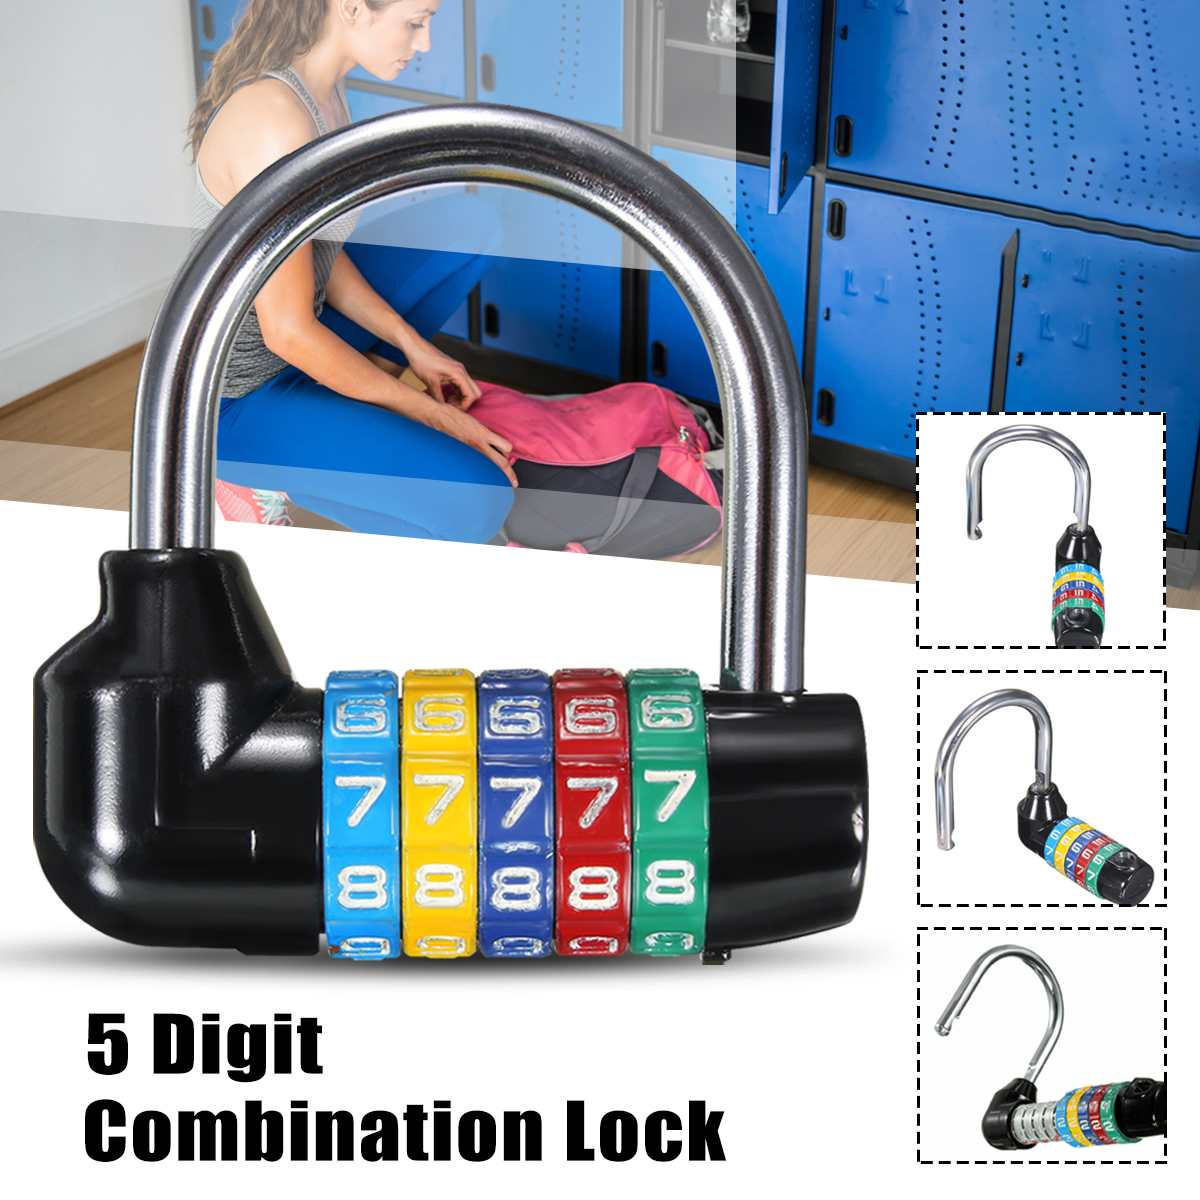 Zinc Alloy 5 Dial Digit Number Code Password Lock Combination Travel Security Safely  Combination Padlock Approx 66x66x20mmZinc Alloy 5 Dial Digit Number Code Password Lock Combination Travel Security Safely  Combination Padlock Approx 66x66x20mm